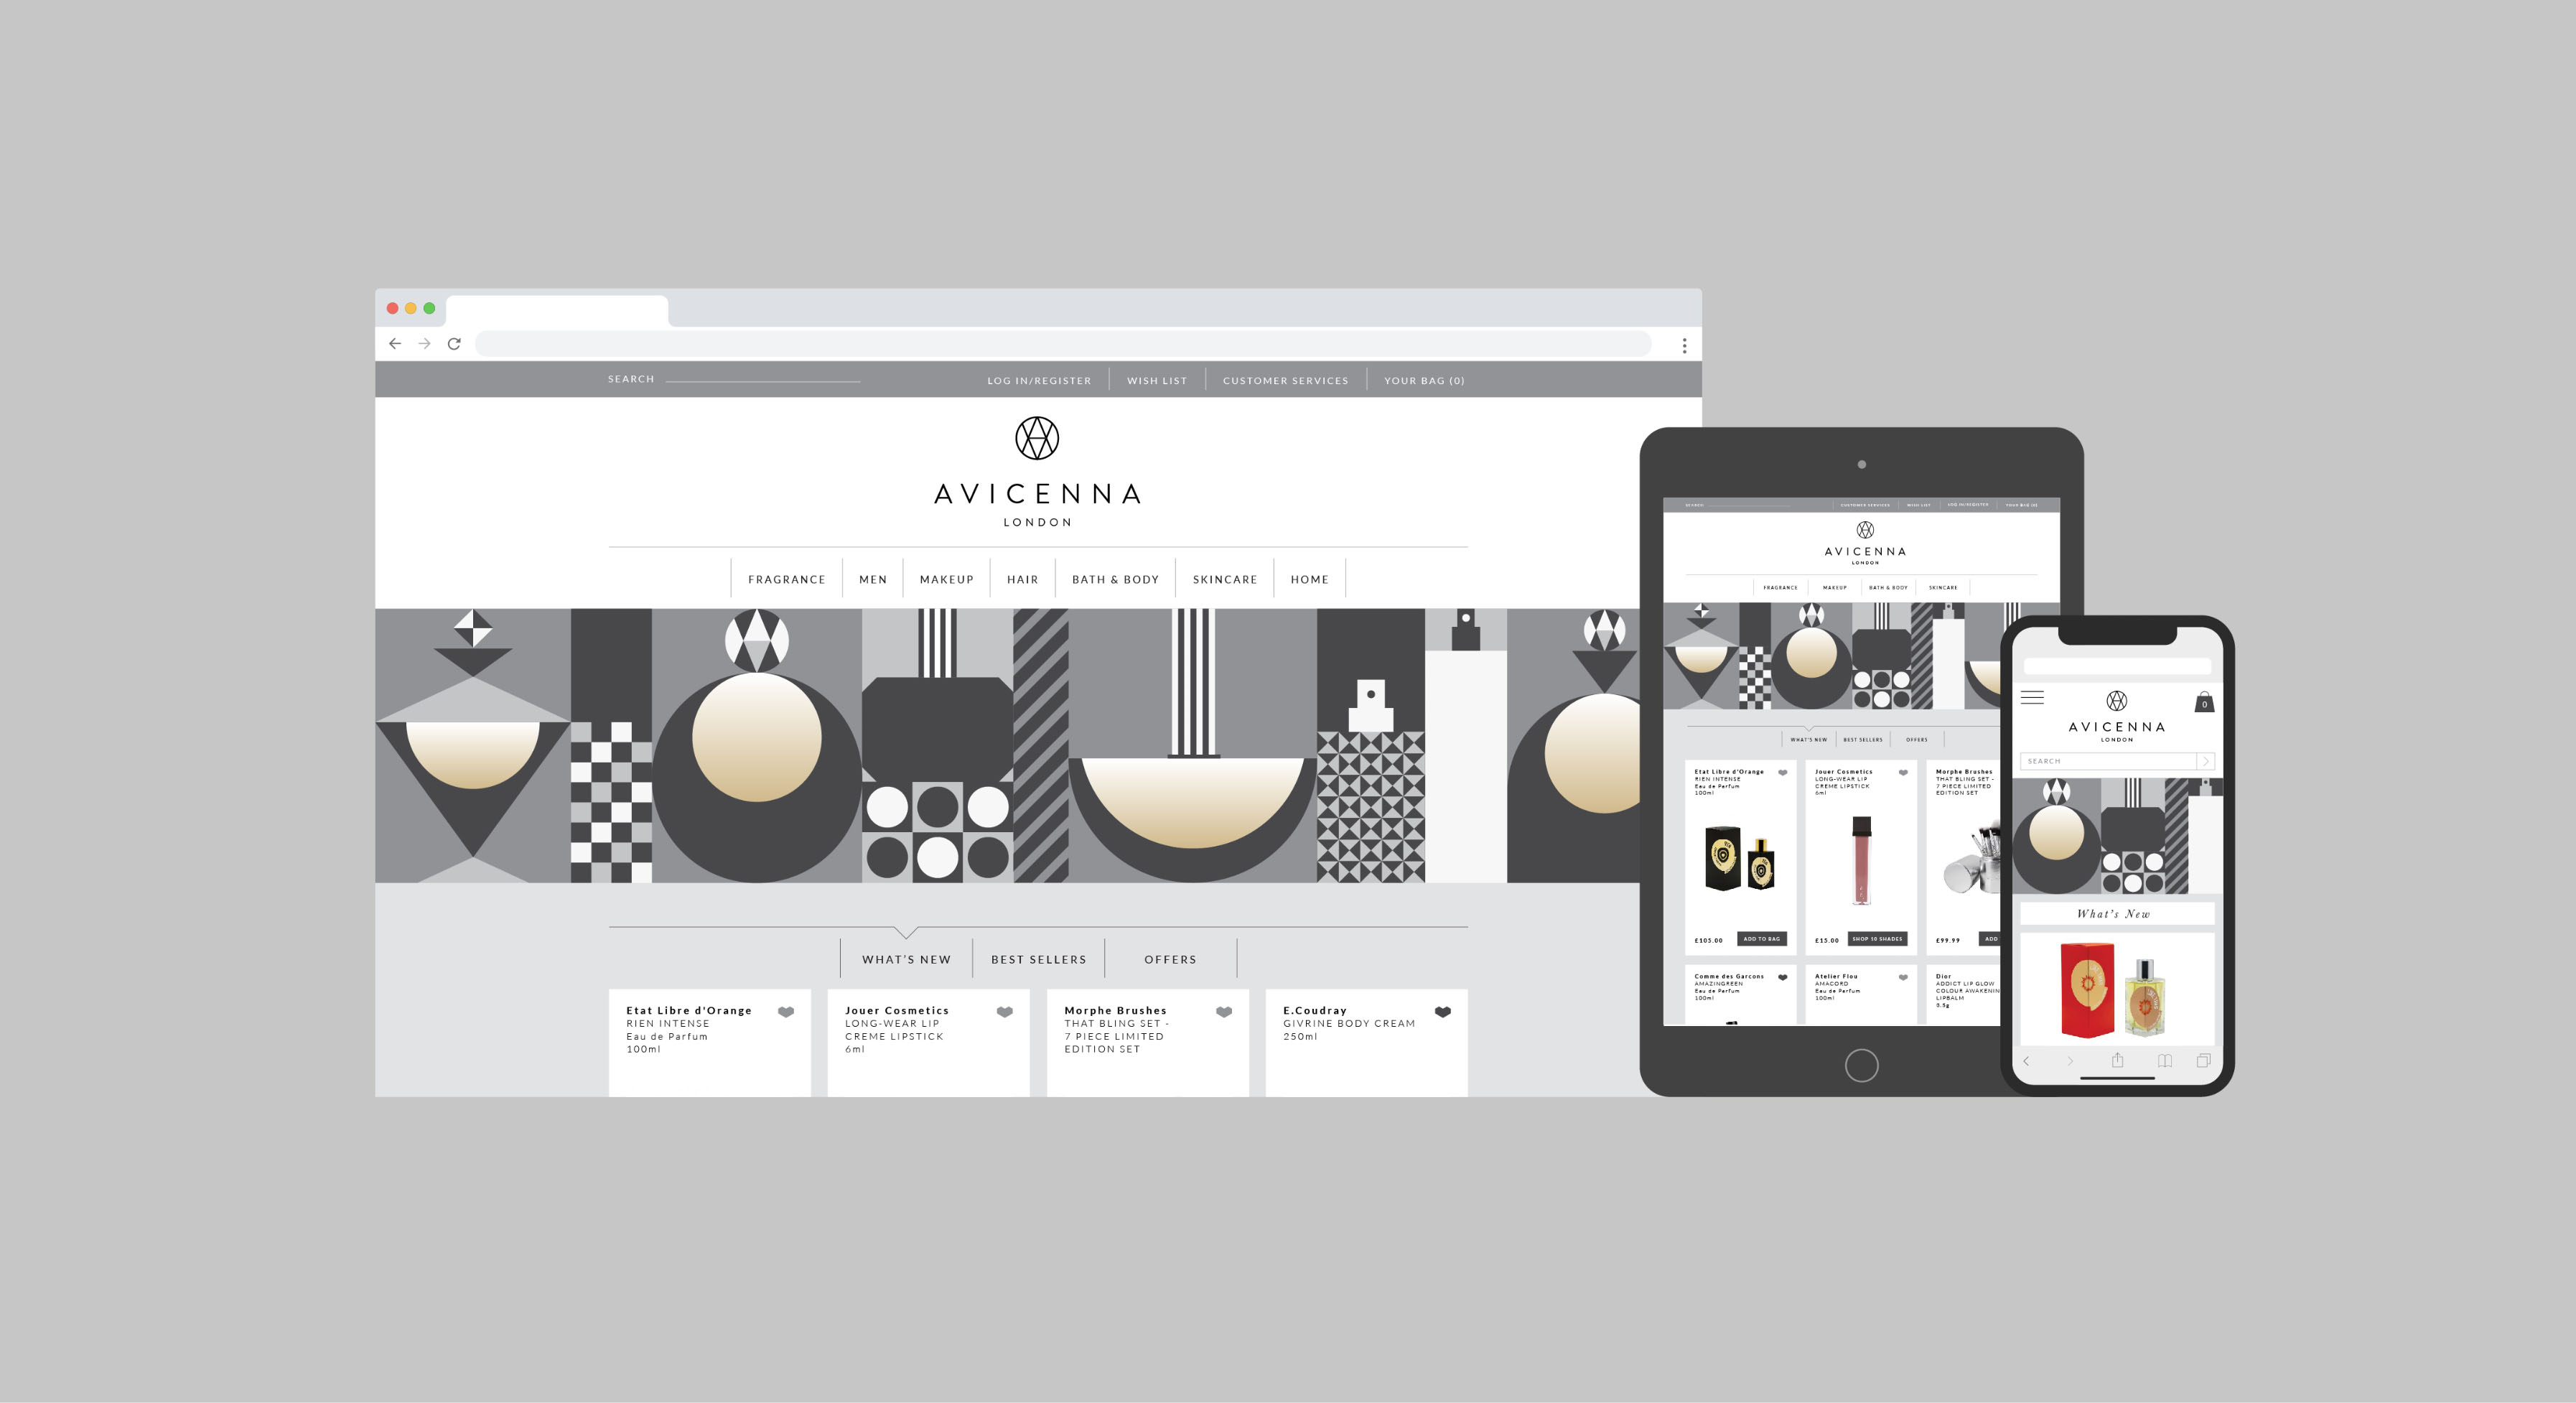 Avicenna perfume shop brand identity and website design